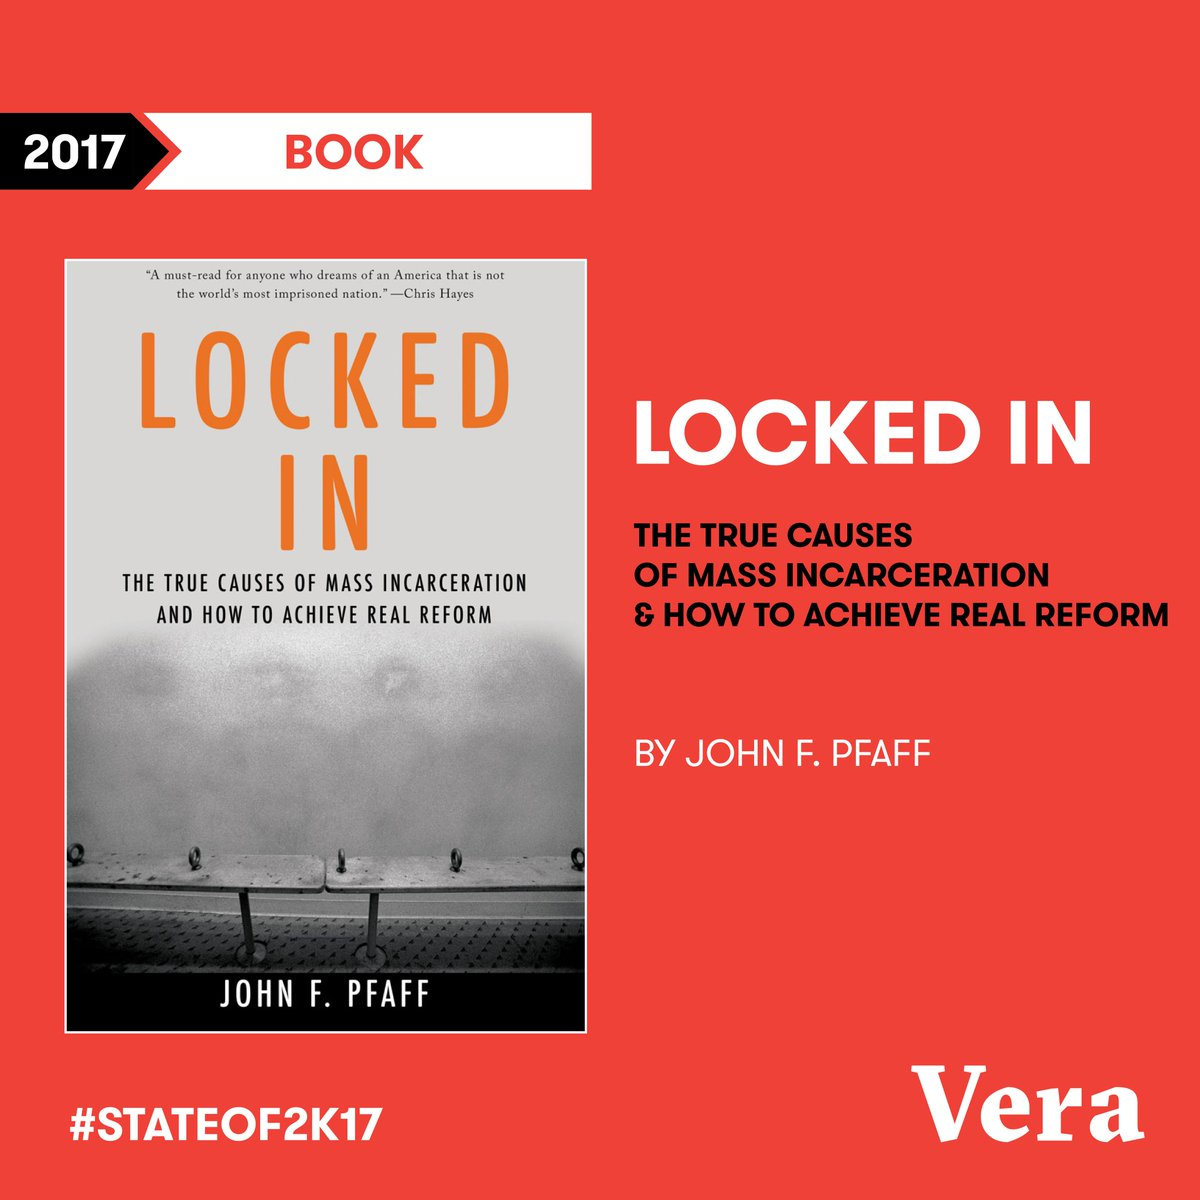 locked in the true causes of mass incarcerationand how to achieve real reform